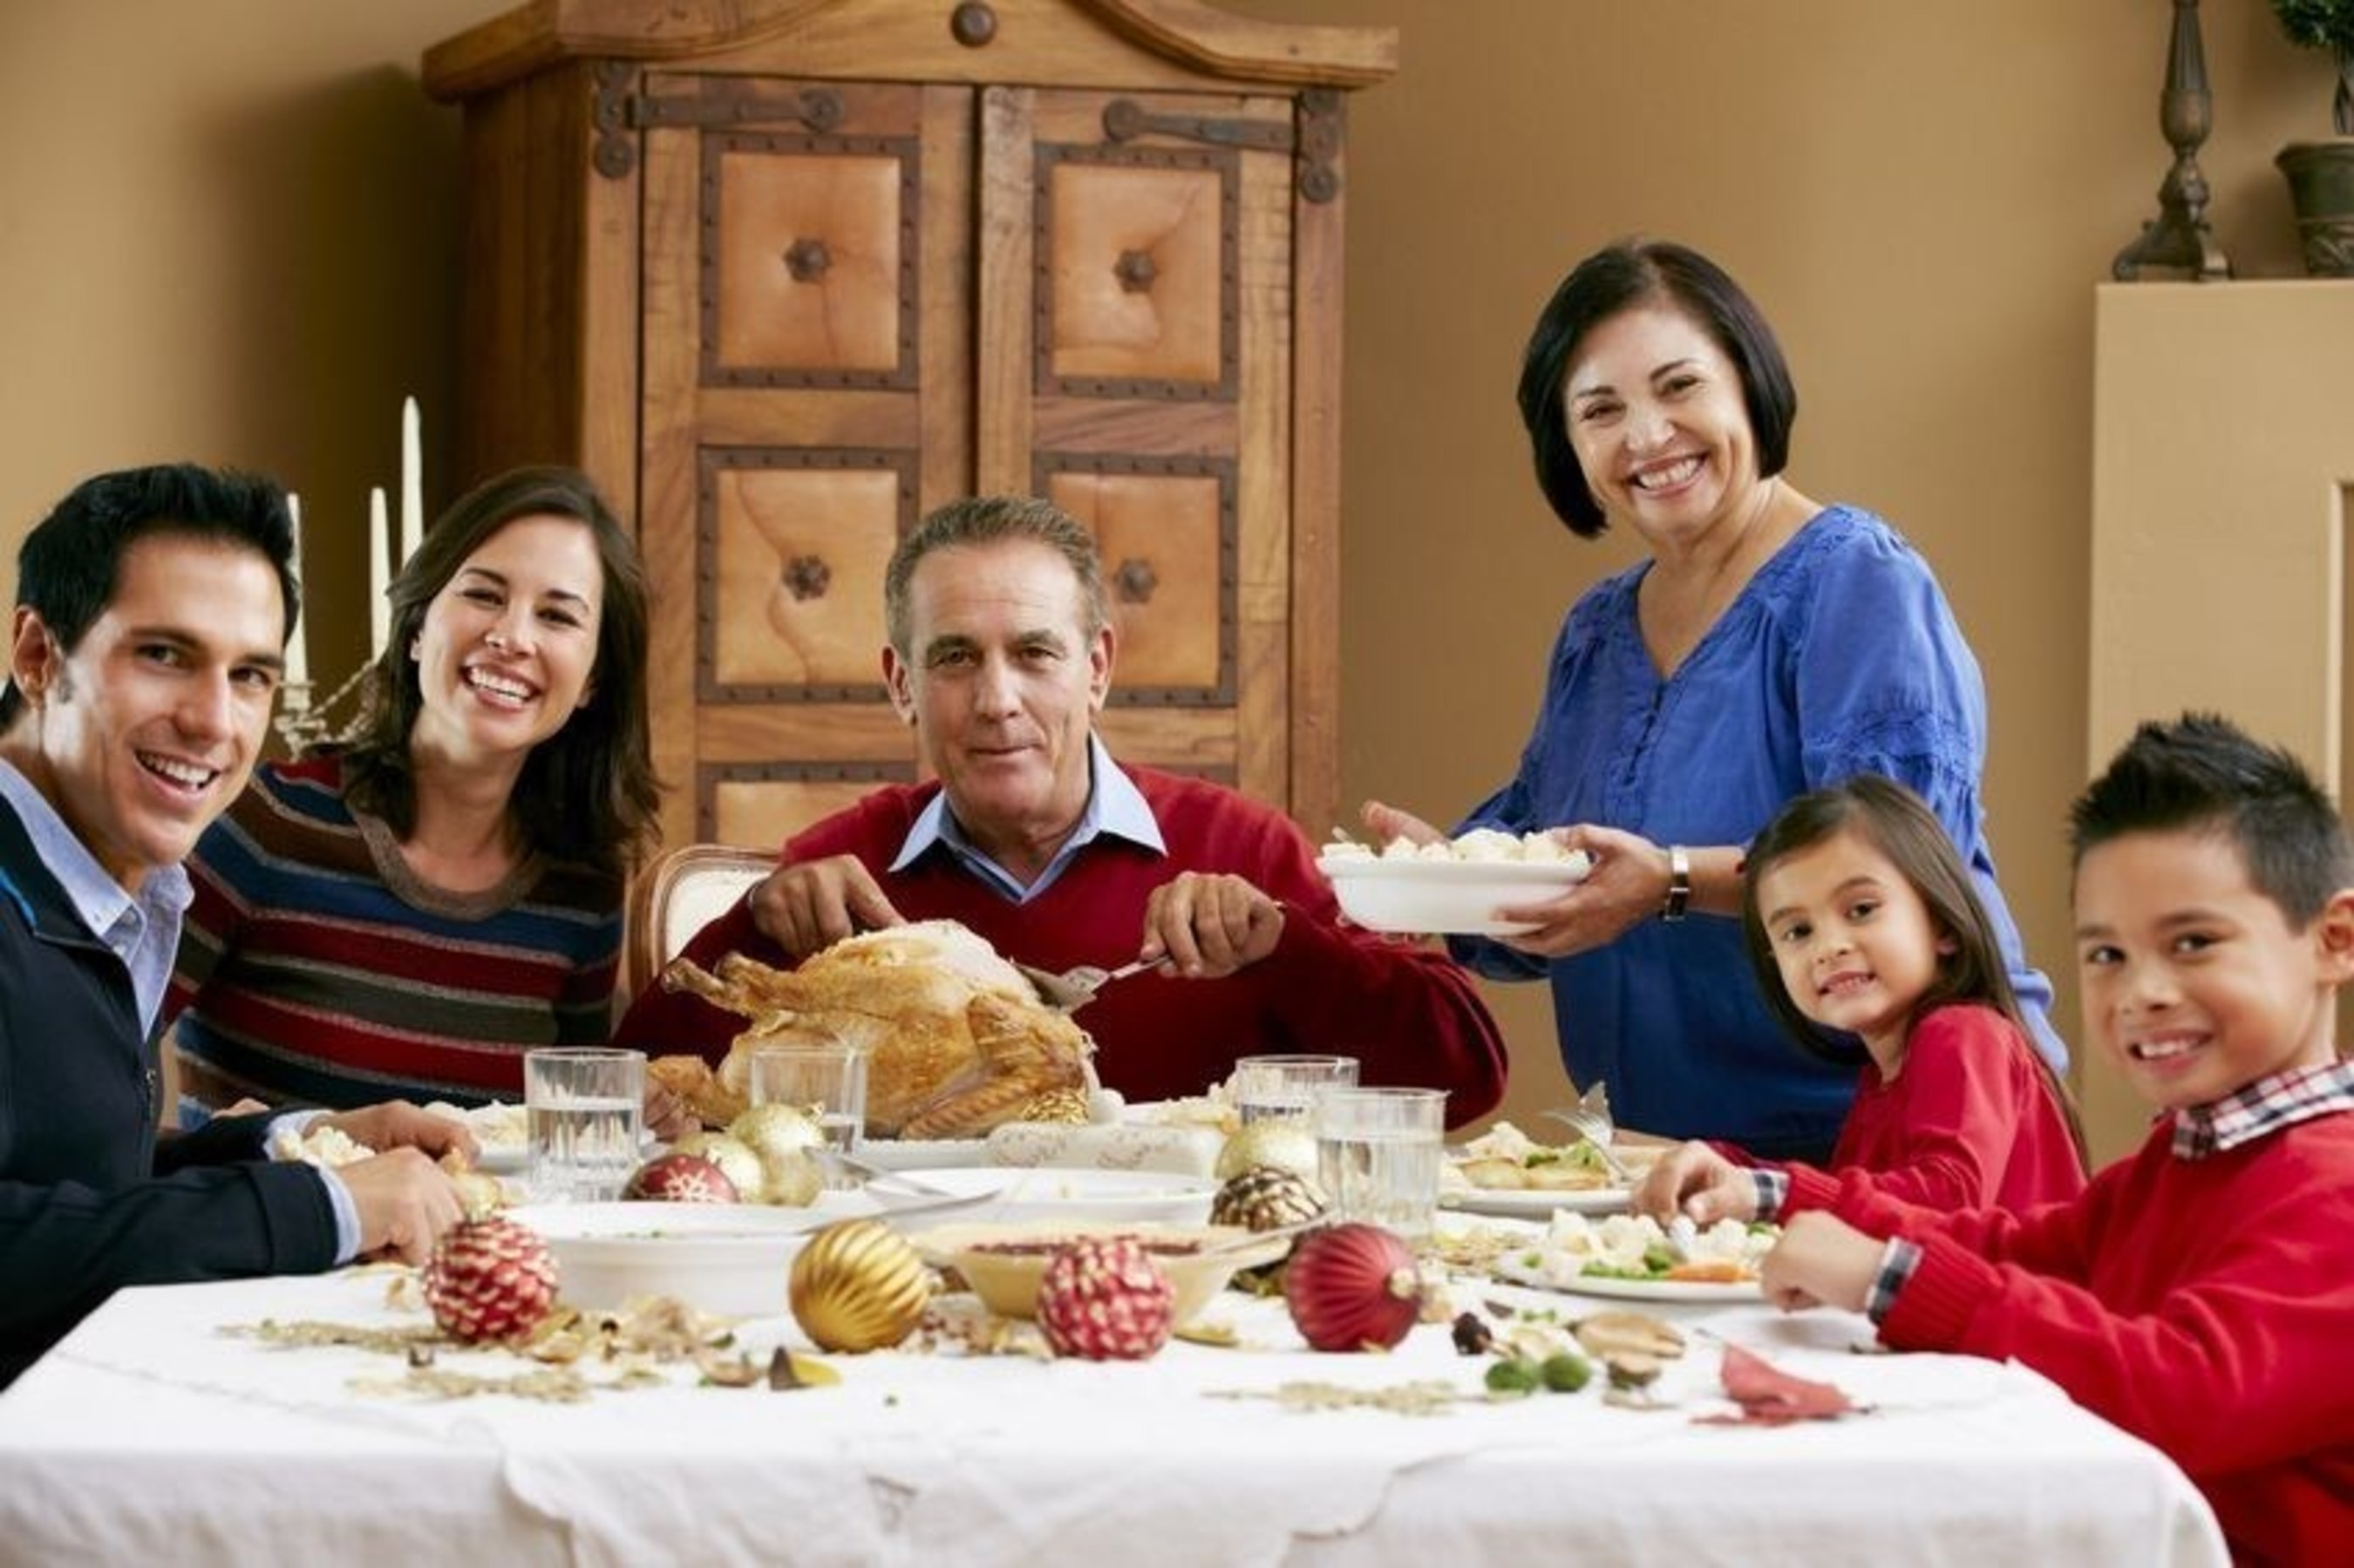 New Jersey family eats a healthy family Holiday meal.